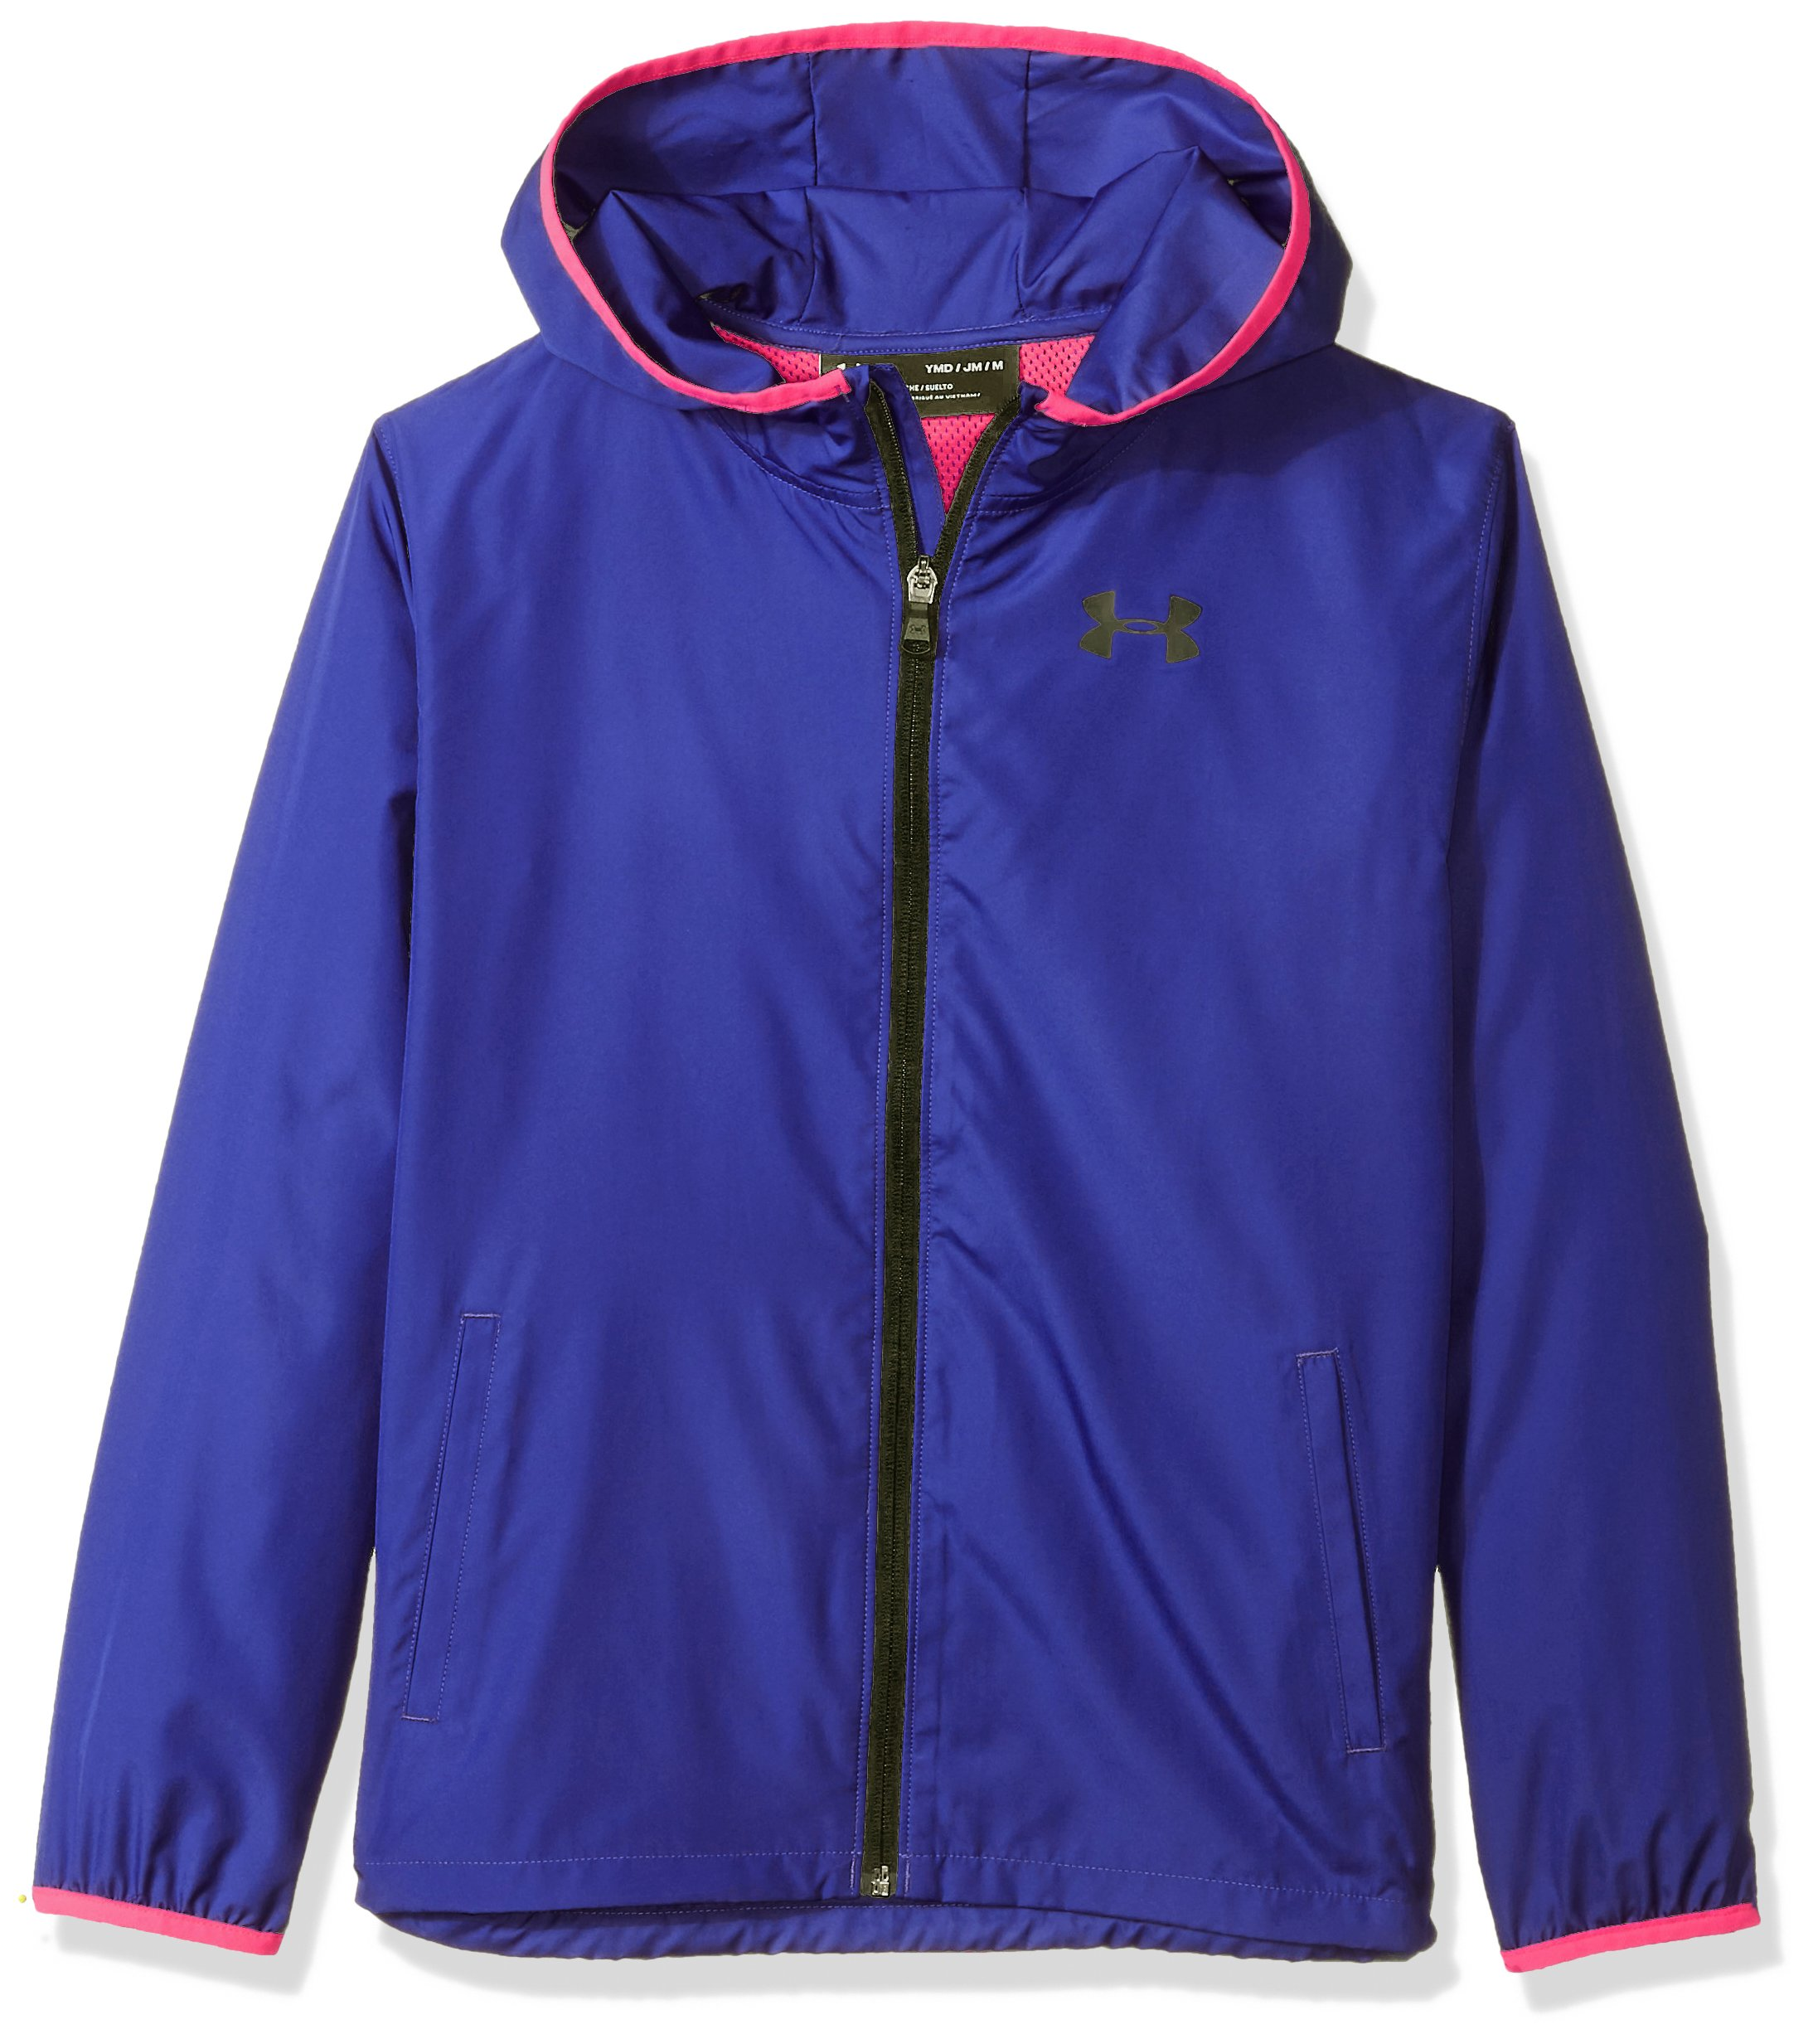 Under Armour Girls Sack Pack Full Zip Jacket, Constellation Purple (530)/Black, Youth X-Large by Under Armour